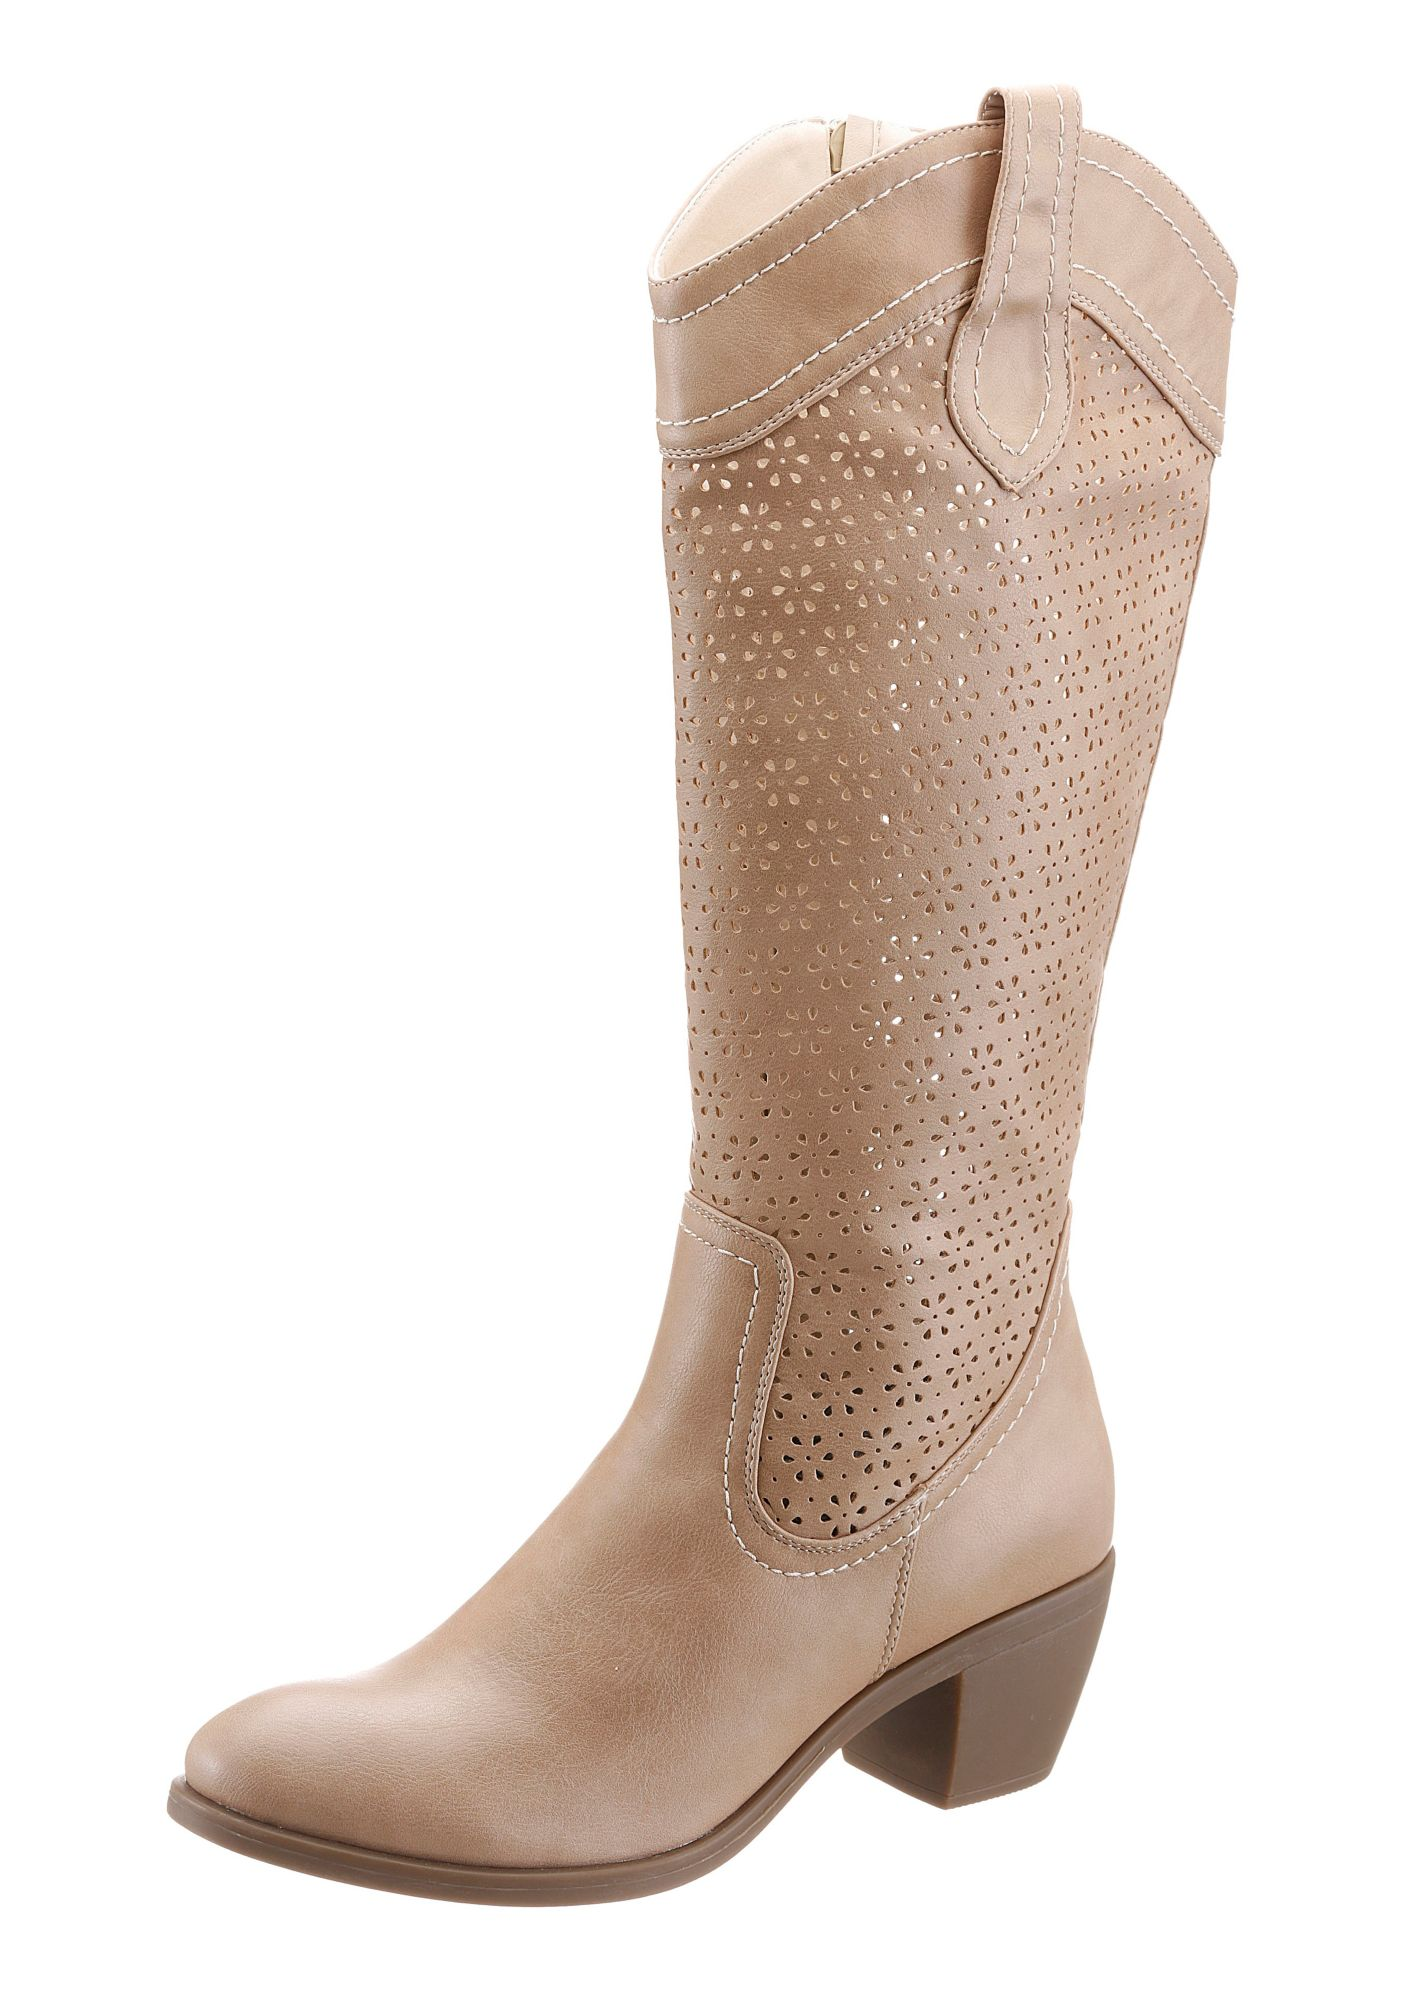 CITY WALK City Walk Sommerstiefel mit Cut Out Muster